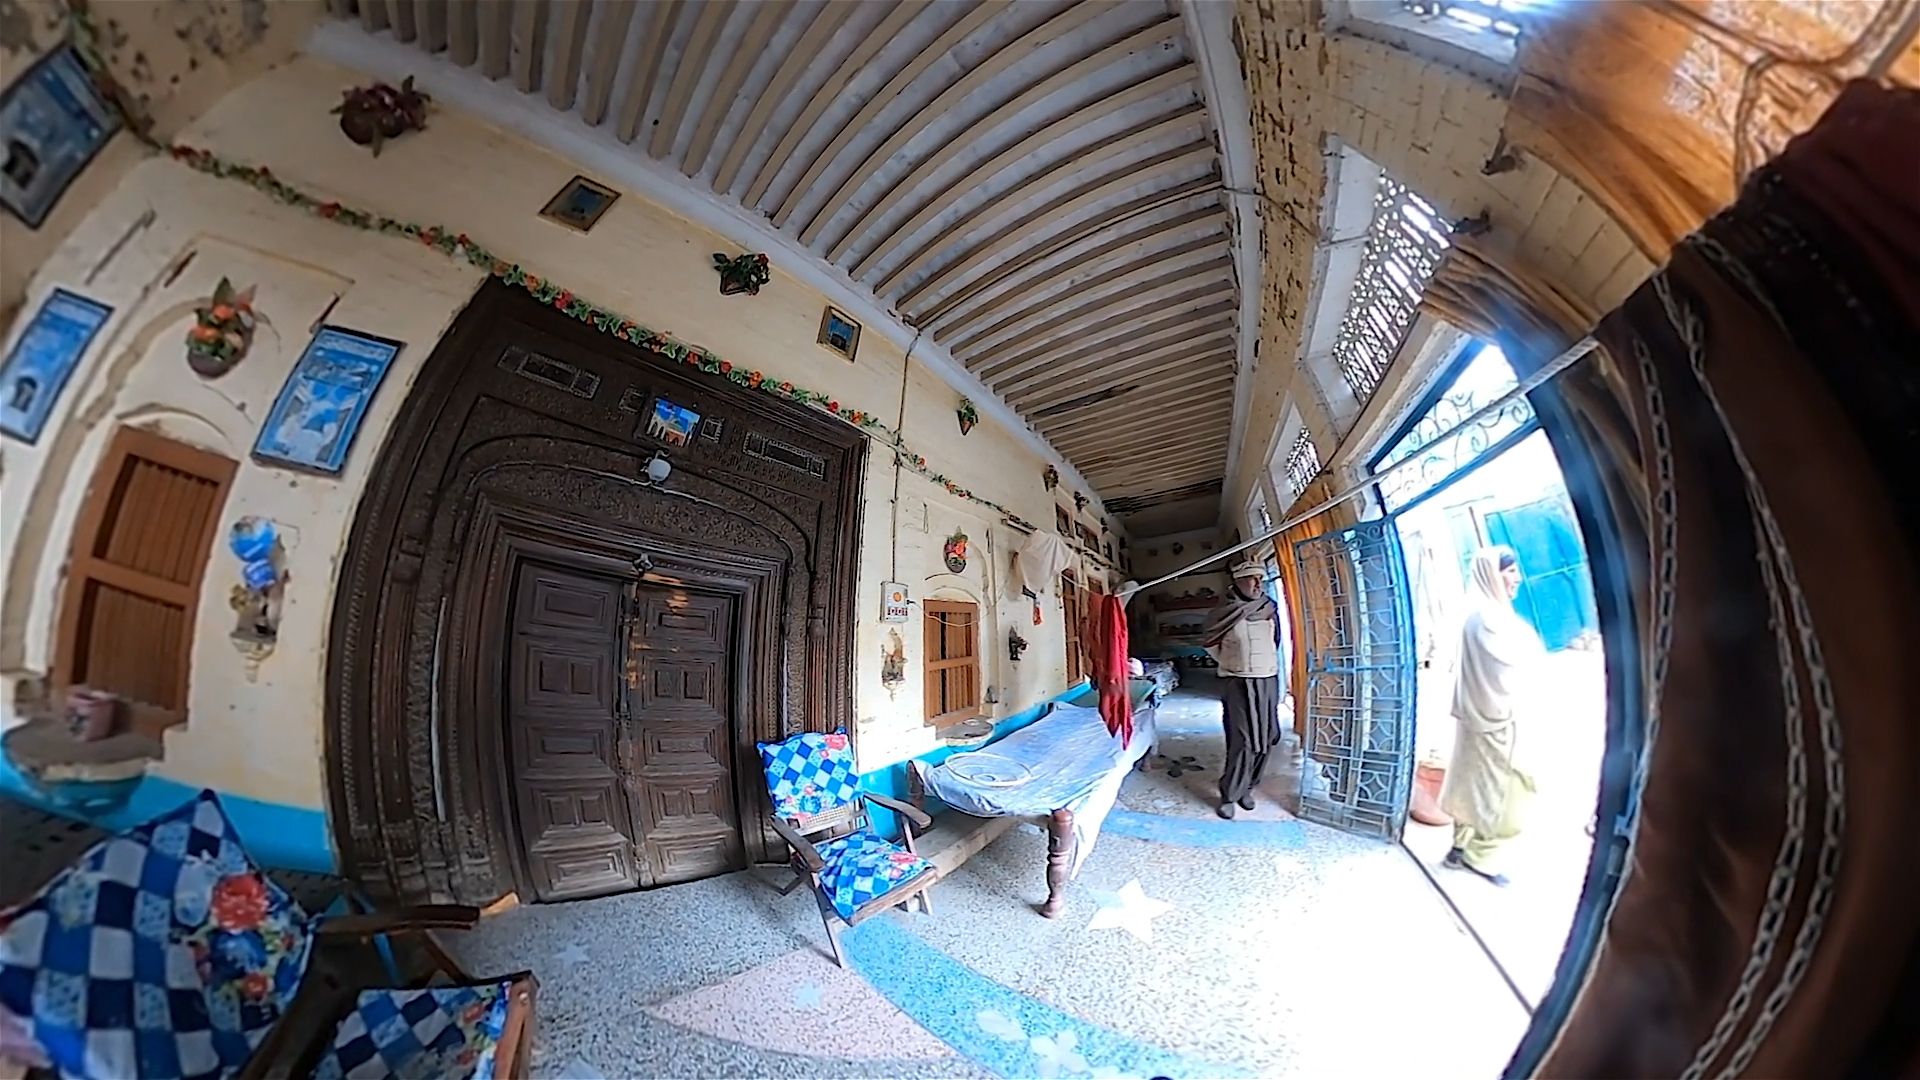 This image from the virtual reality tour of Dharukna—in what is now Pakistan's Punjab province—shows a home near where Hari Krishan Lal Anand grew up.